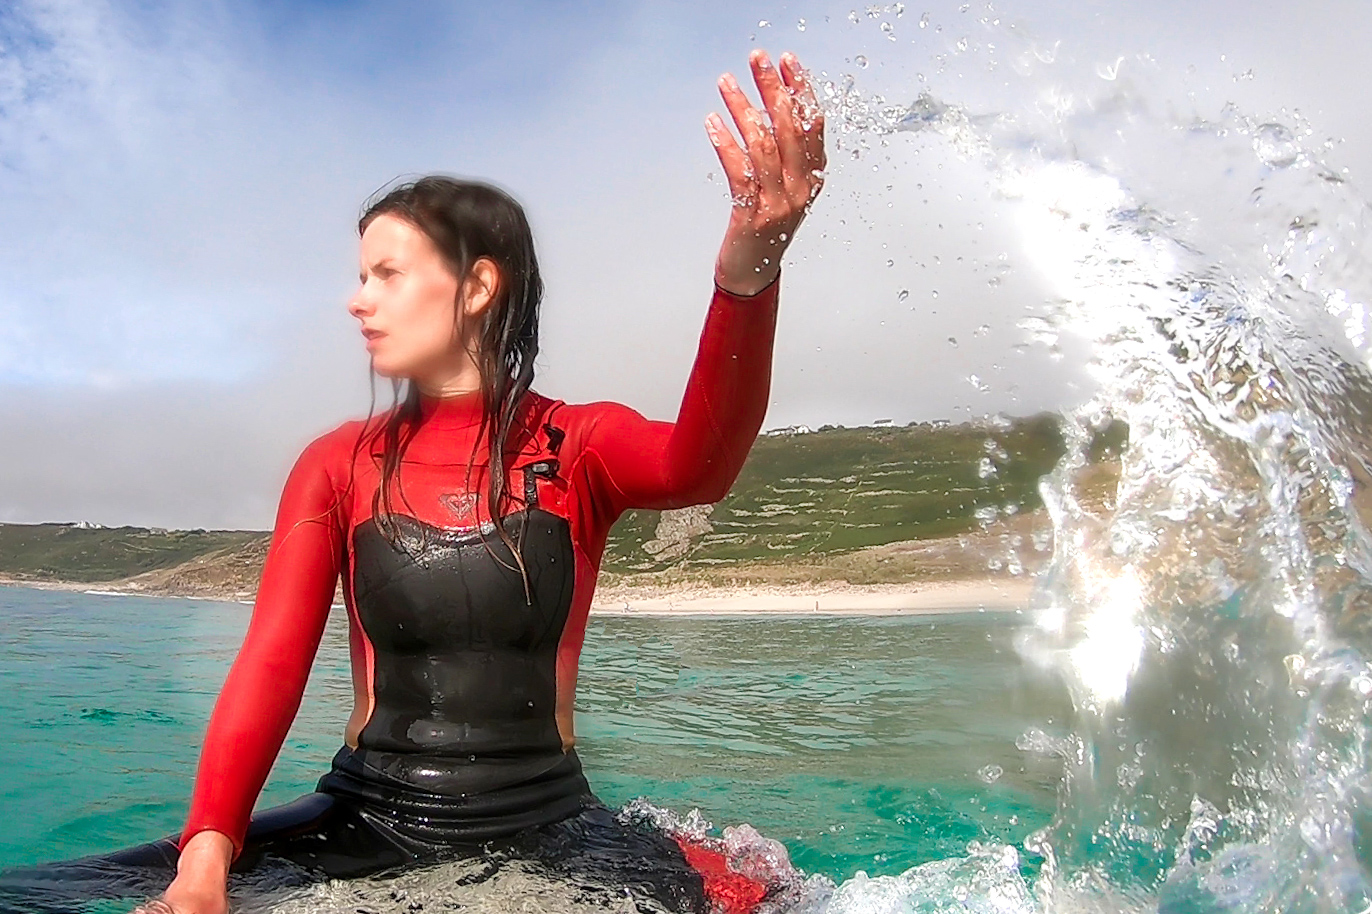 Girl on a surfboard in Cornwall learning how to surf